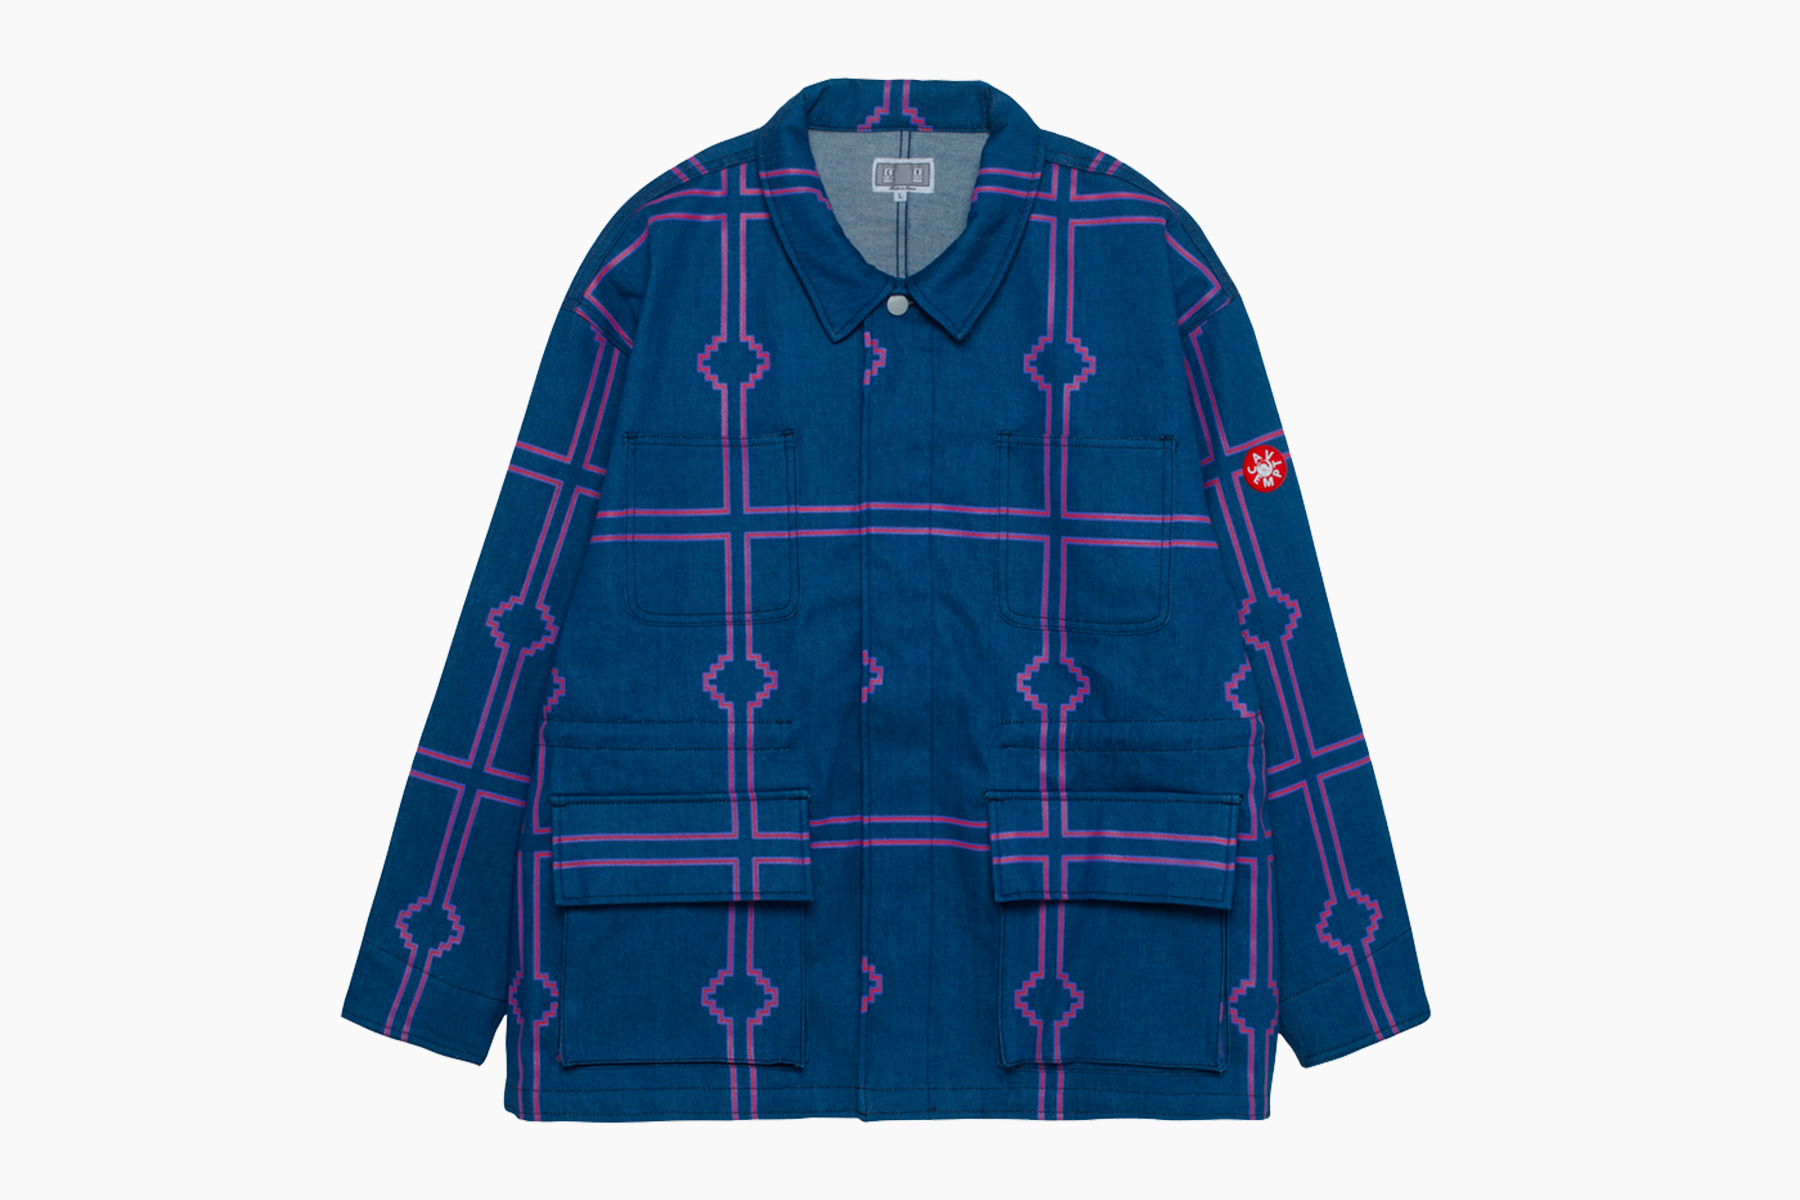 Cav Empt SS20 7th Drop